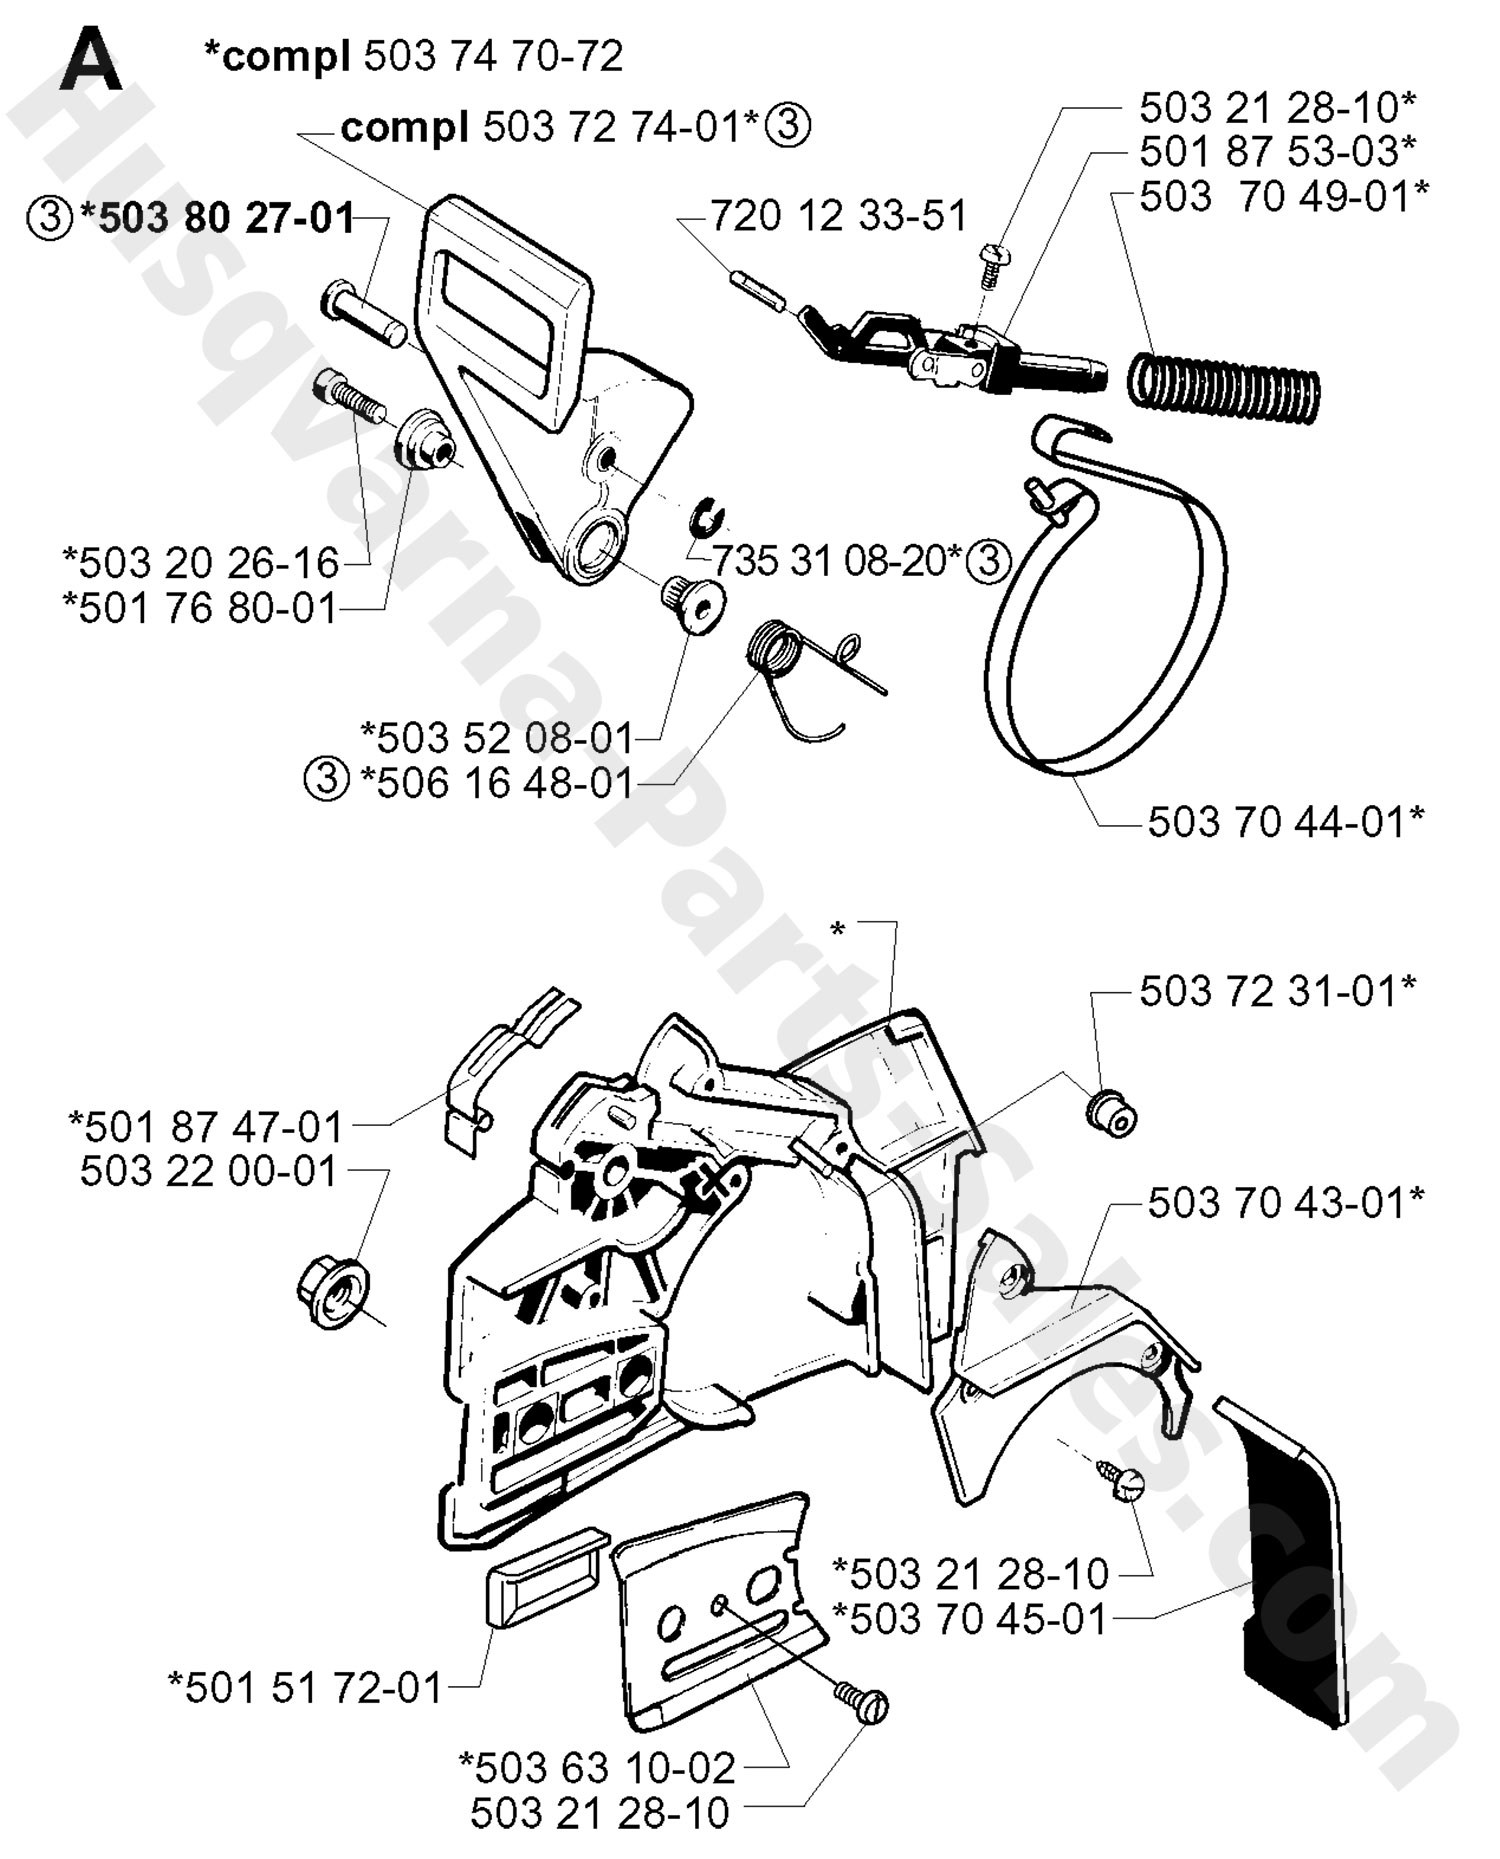 Remarkable husqvarna 51 chainsaw parts diagram images best image